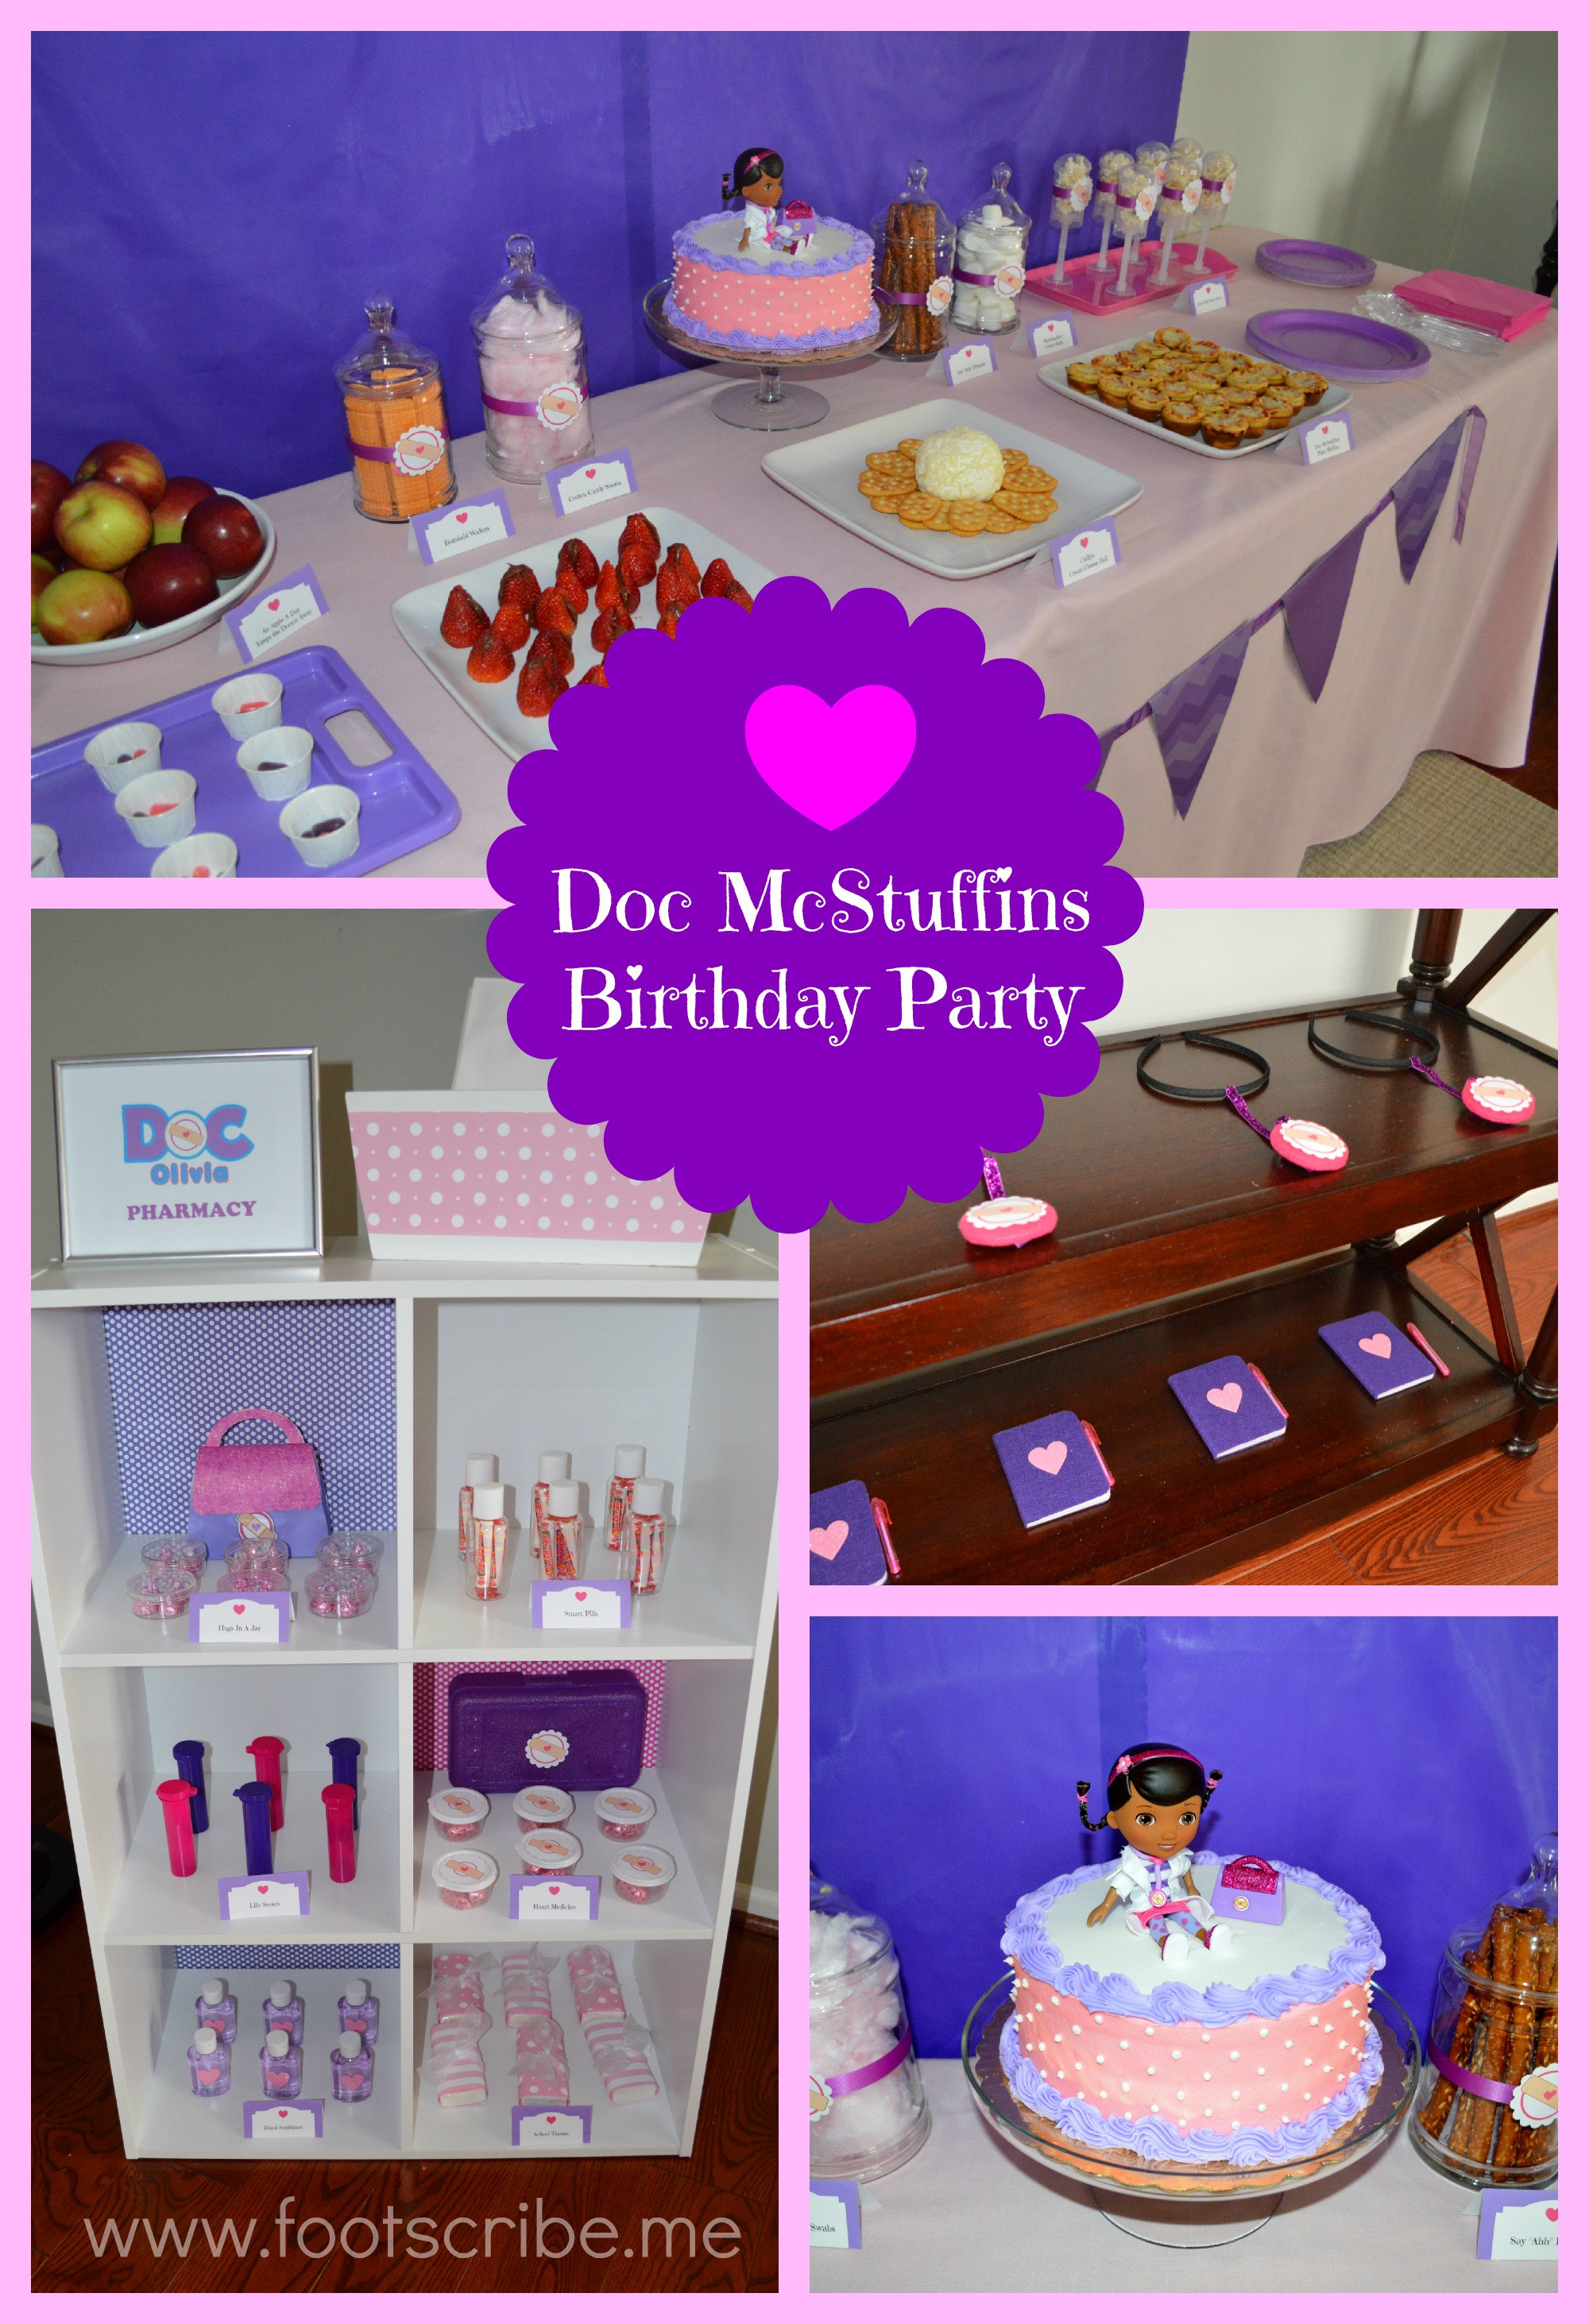 Best ideas about Doc Mcstuffins Birthday Party Ideas . Save or Pin My Daughter's Happy Healthy Doc McStuffins Birthday Party Now.